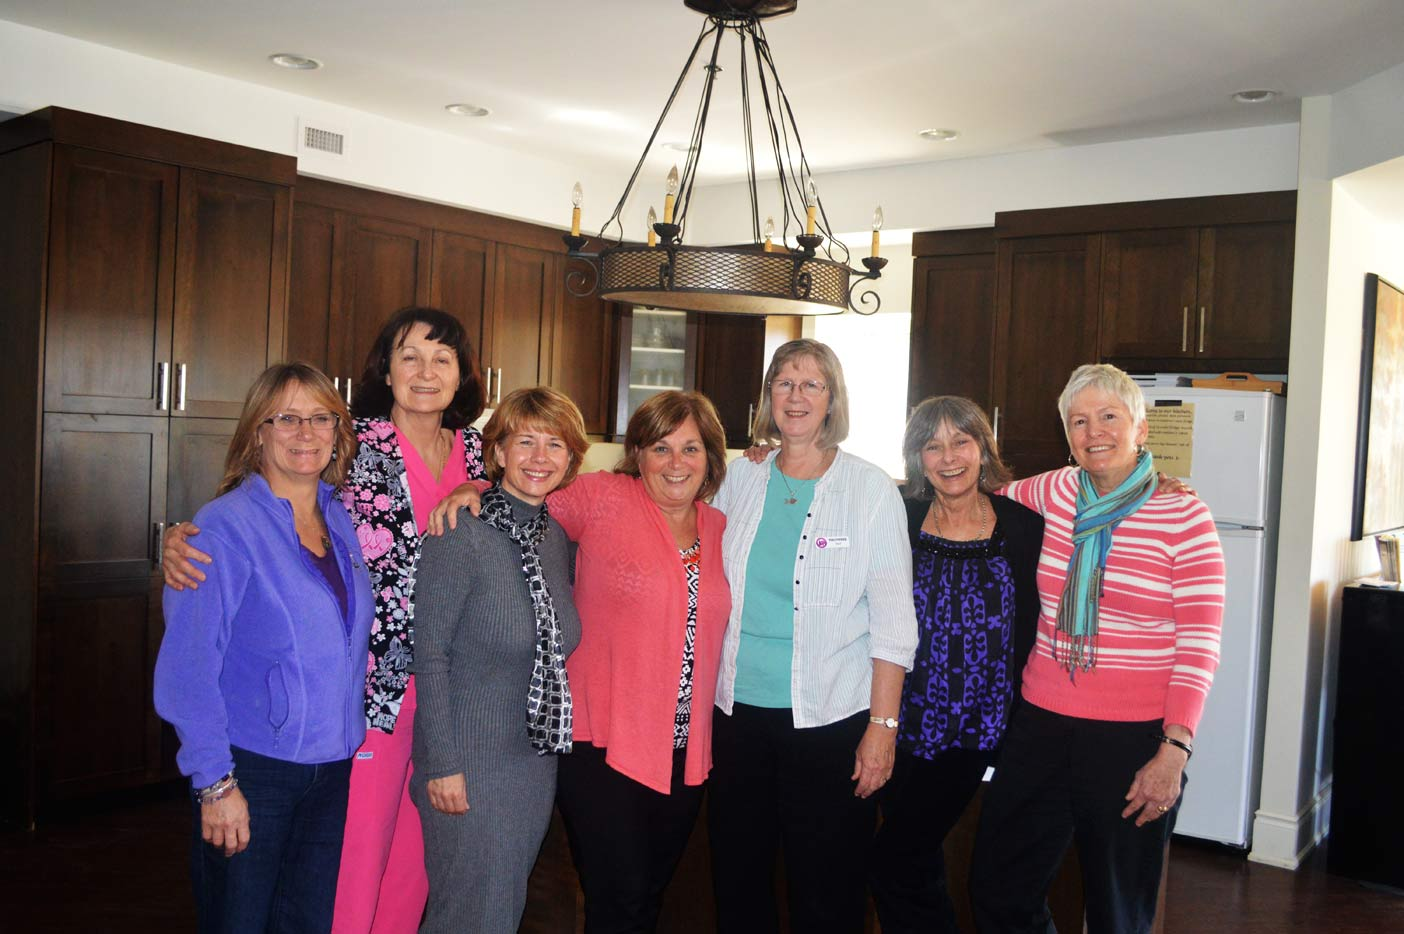 A team of dedicated volunteers and workers is what makes Hospice Huntsville such an amazing service. (From left) Kellie Leader, Betty Lou Durr, Melissa Polischuk, Bev Lashbrook, Pat Looker, Vina Parker and Eleanor Barry.